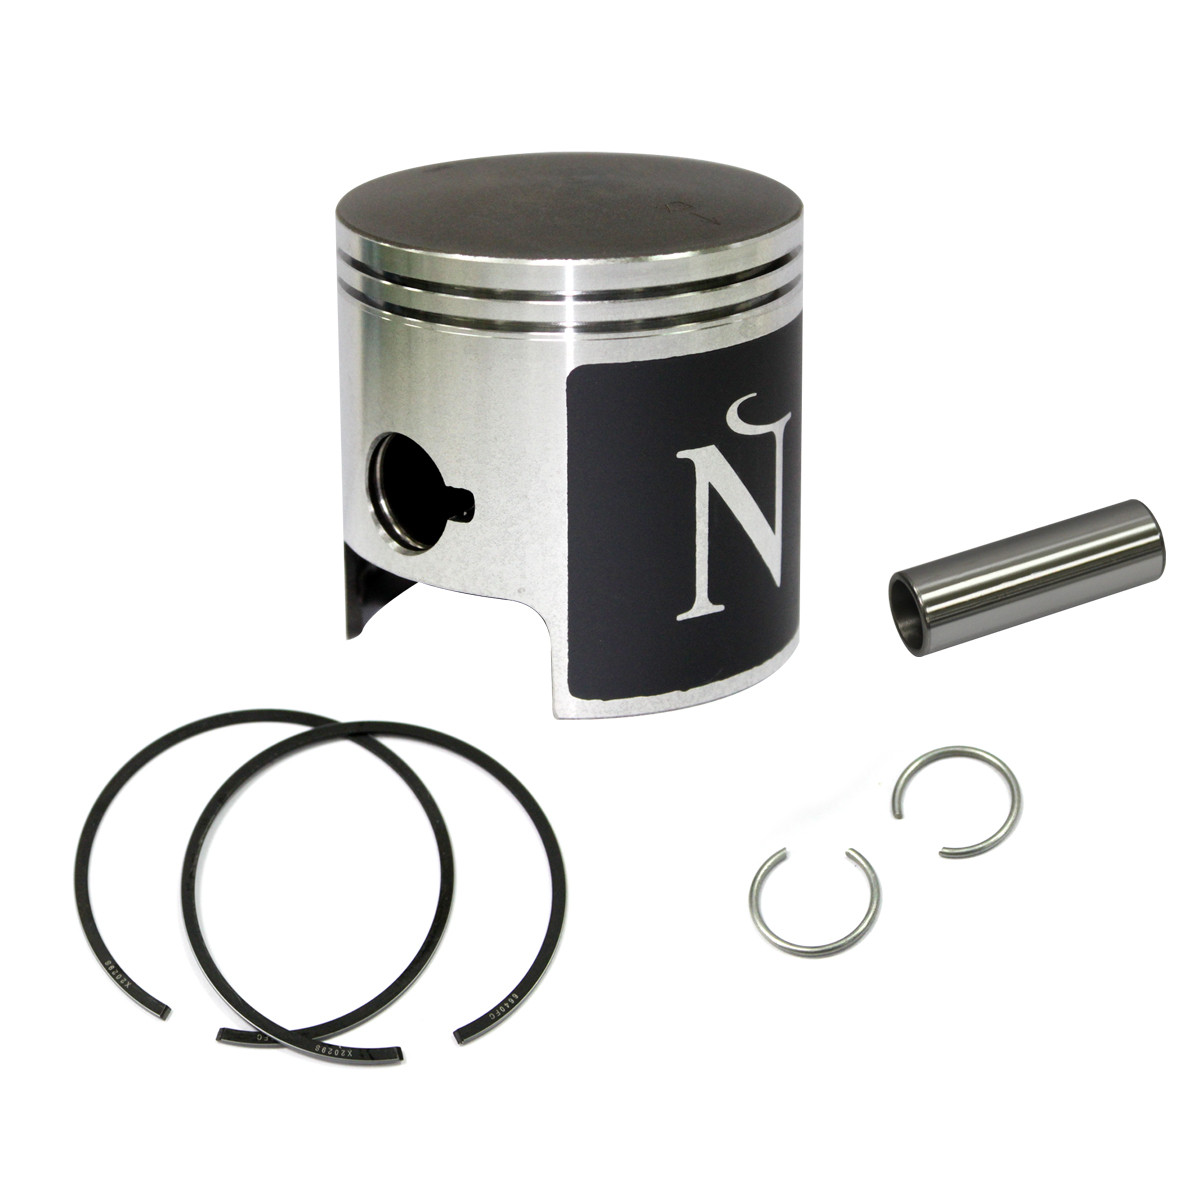 Namura NA-50000 Polaris 250 Piston Kit Standard Bore - 72 00